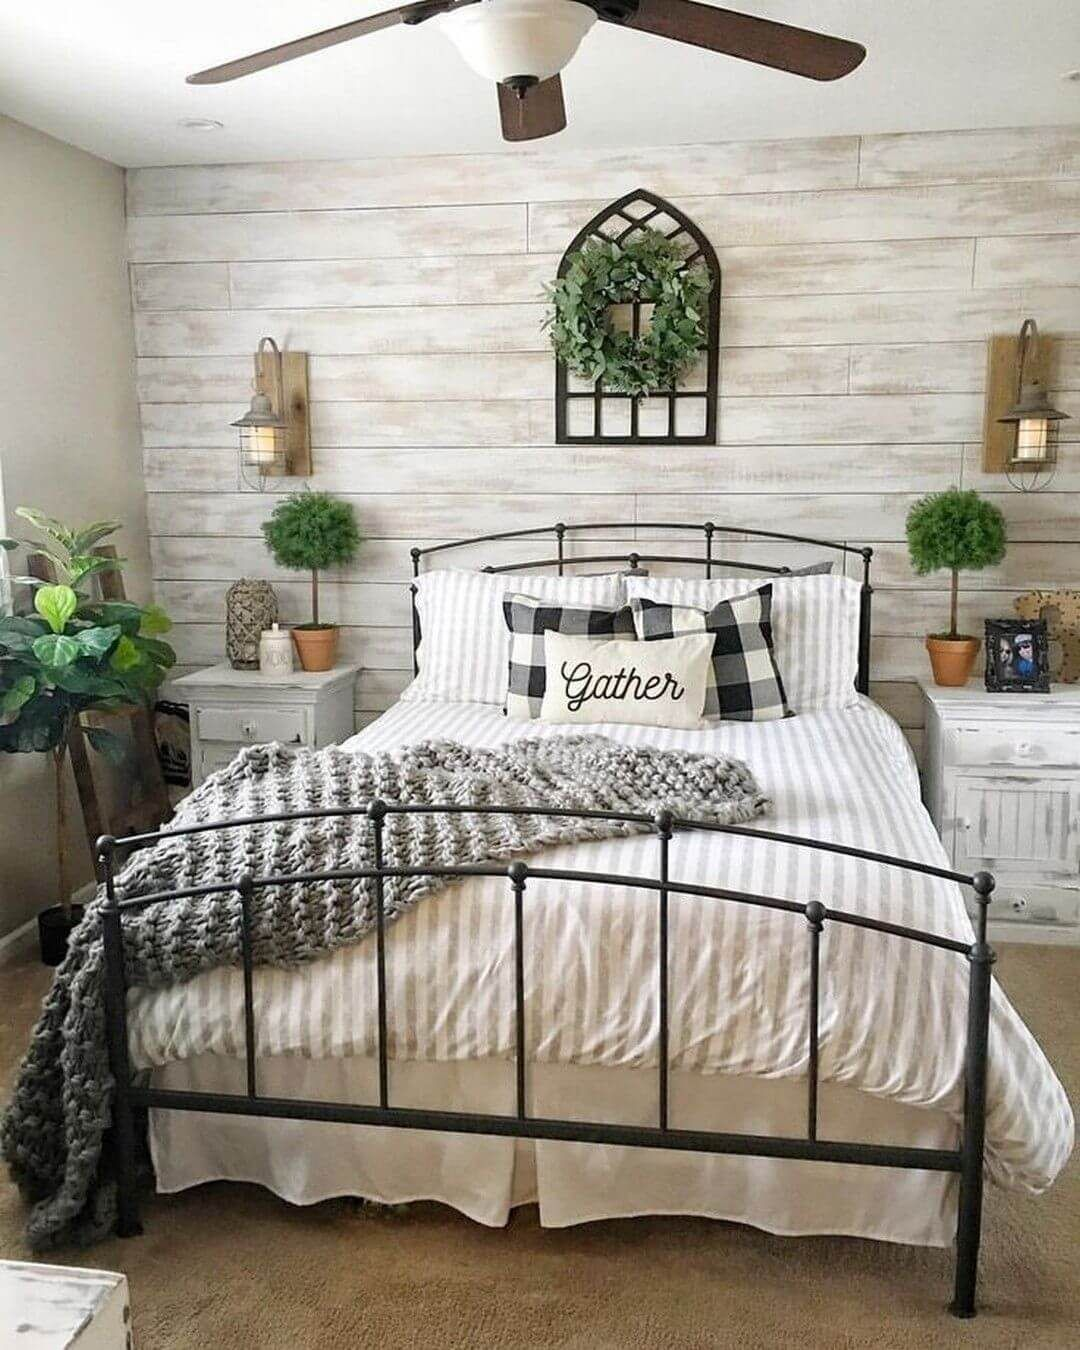 25 Fashionable Shabby Chic Bedroom (All Are Stylish!) - Q7